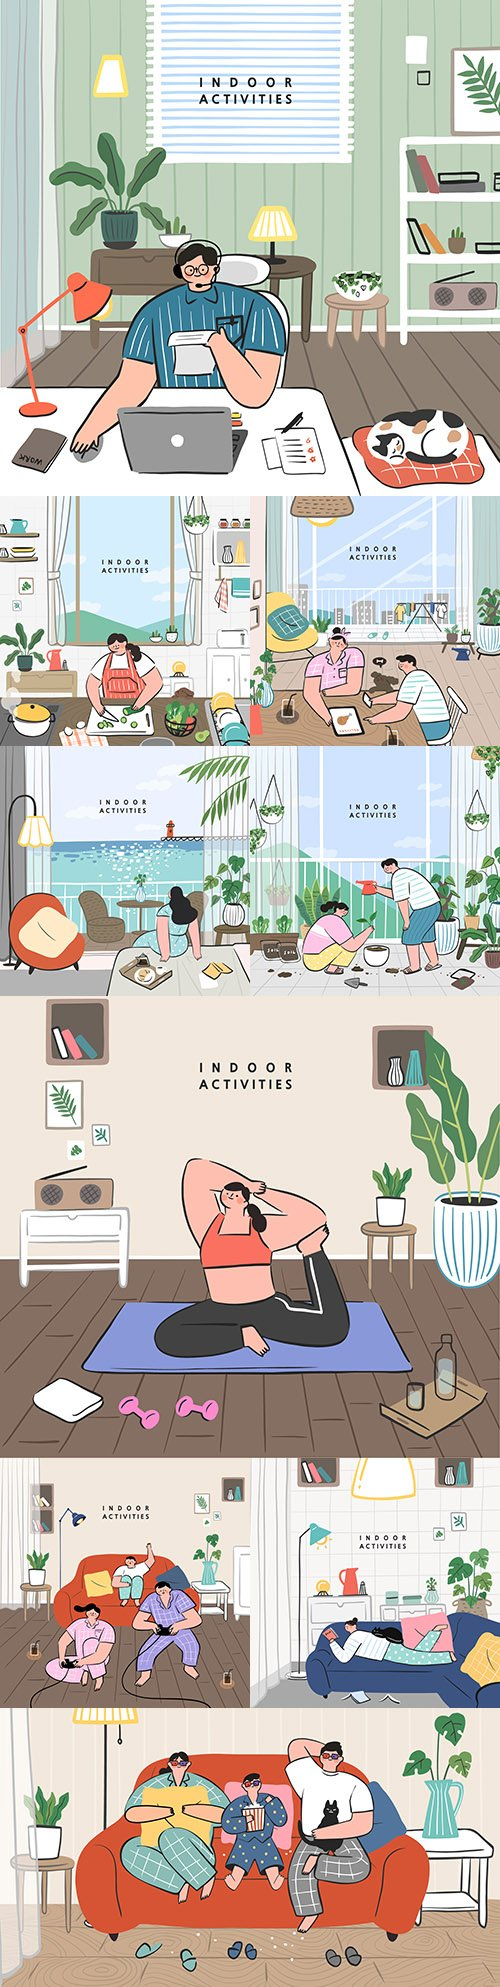 Hobbies are different ideas that can be made by staying at home